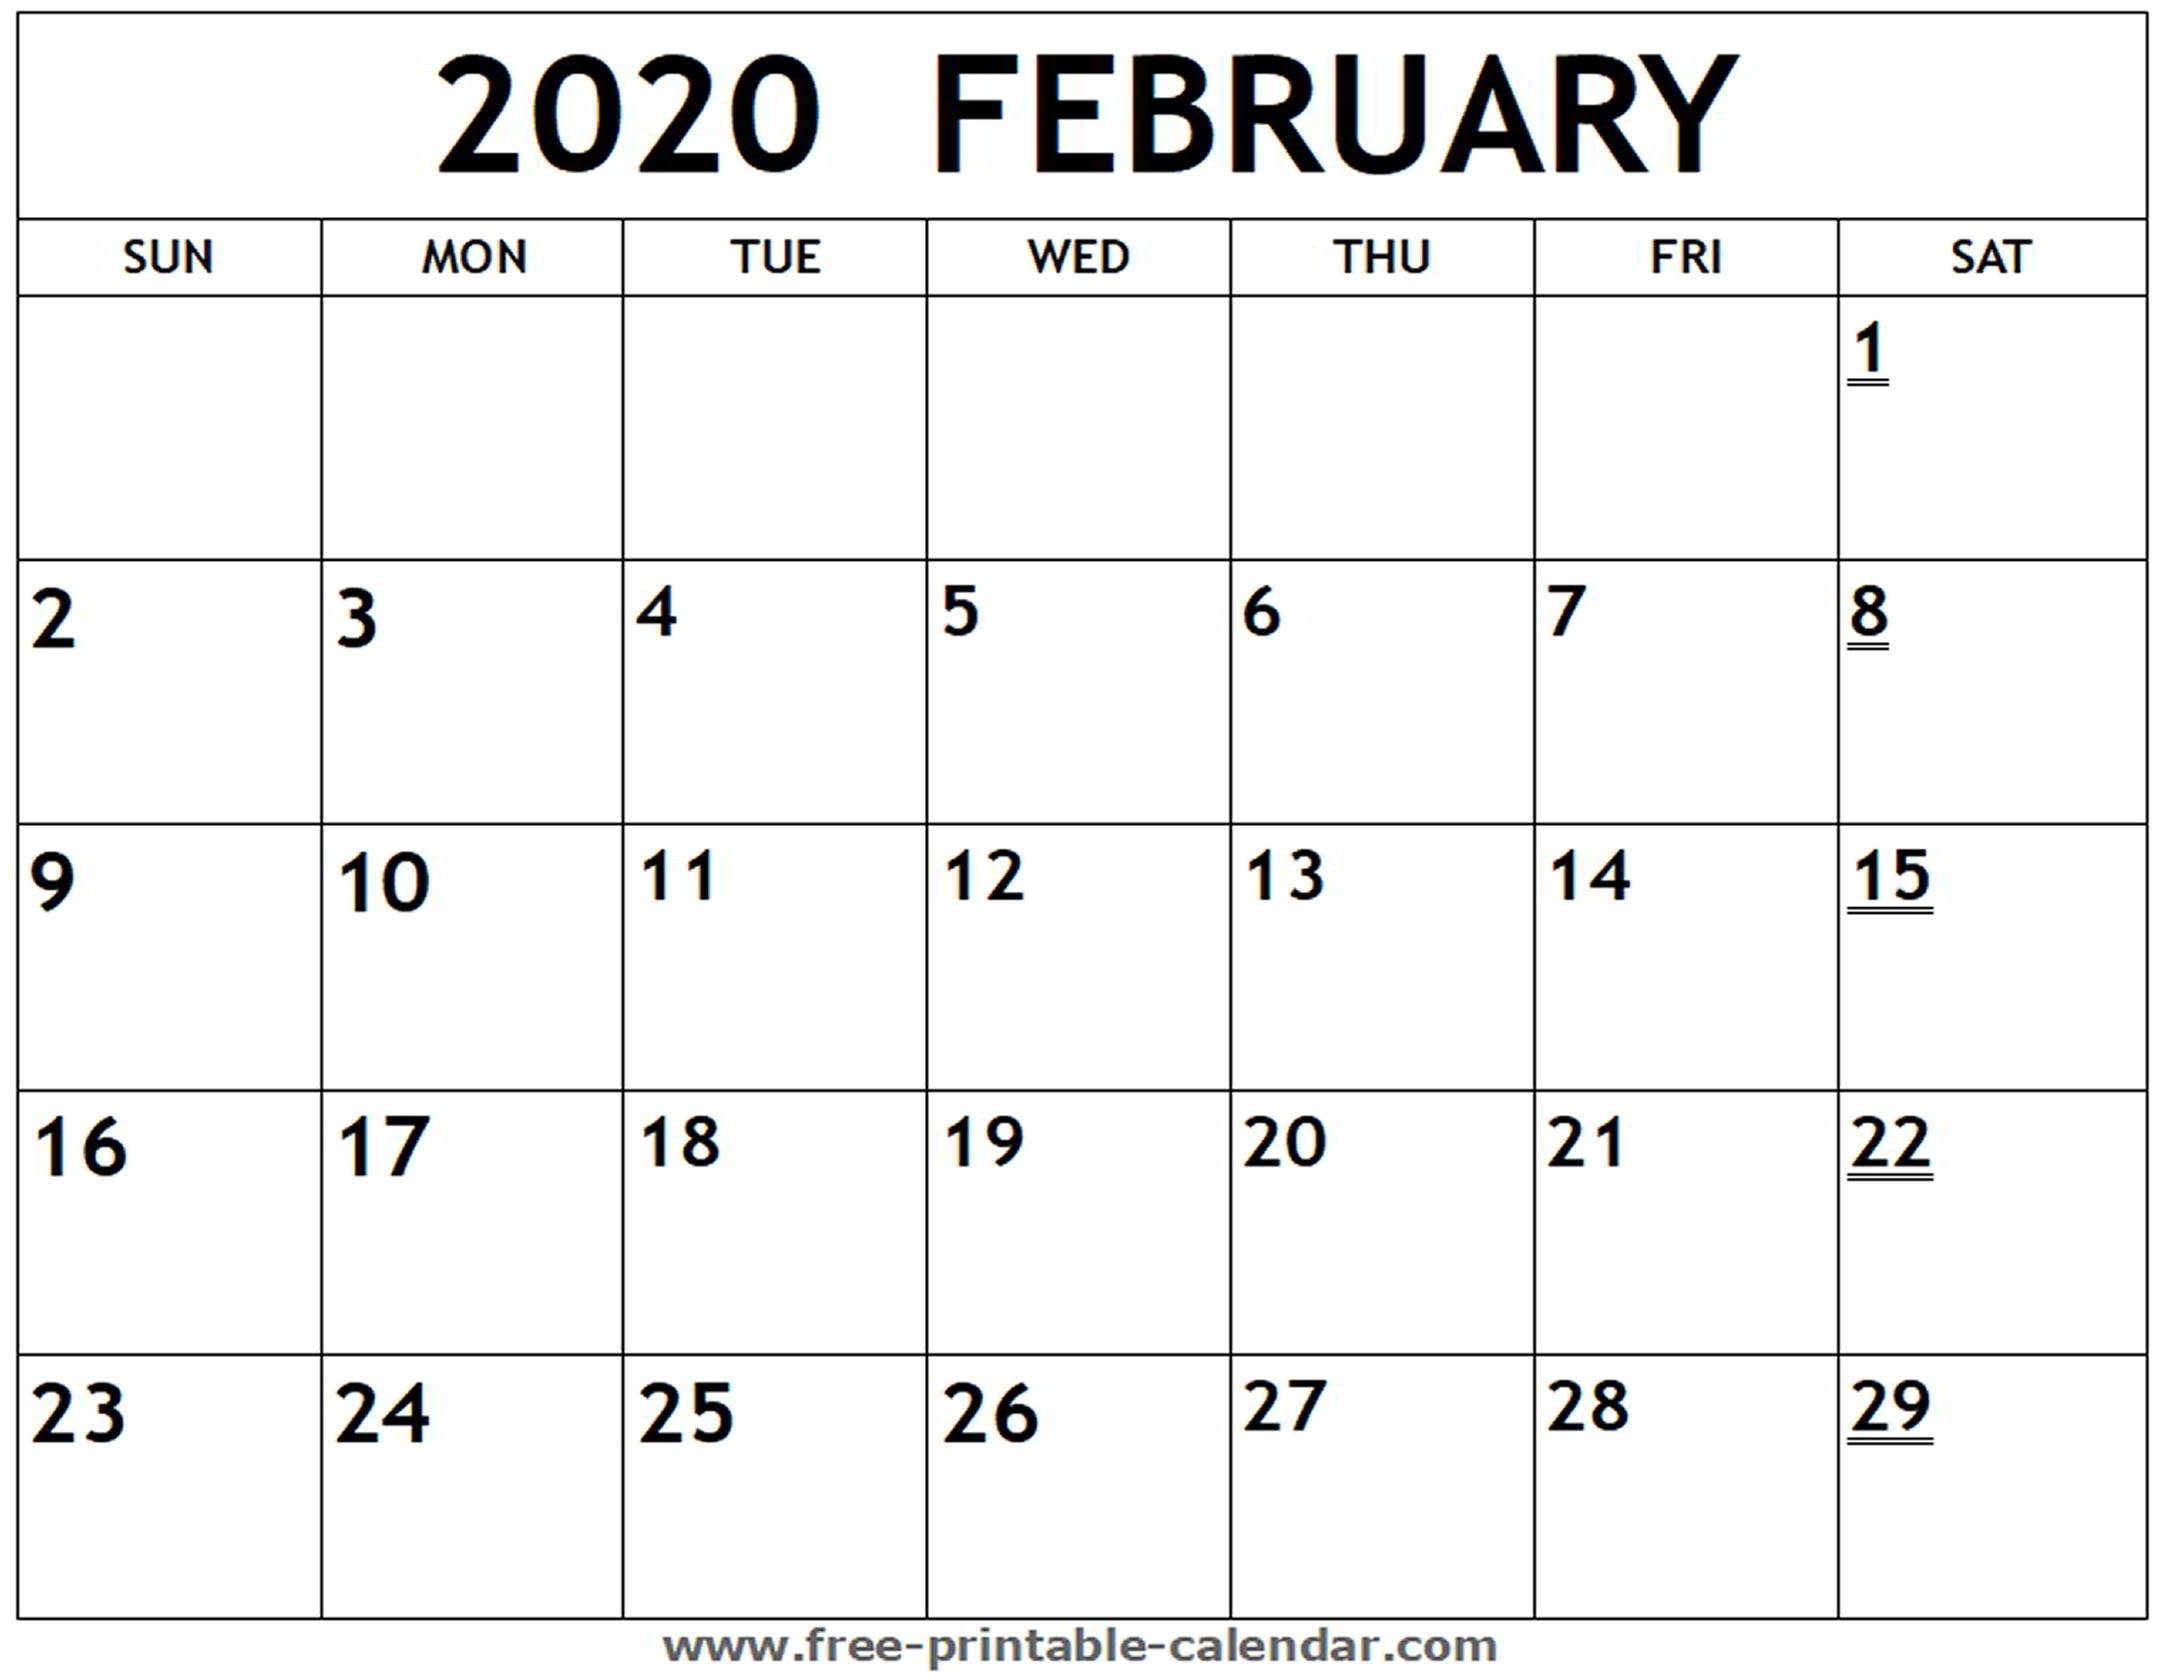 Printable 2020 February Calendar - Free-Printable-Calendar with regard to February 2020 Calender That I Can Fill In